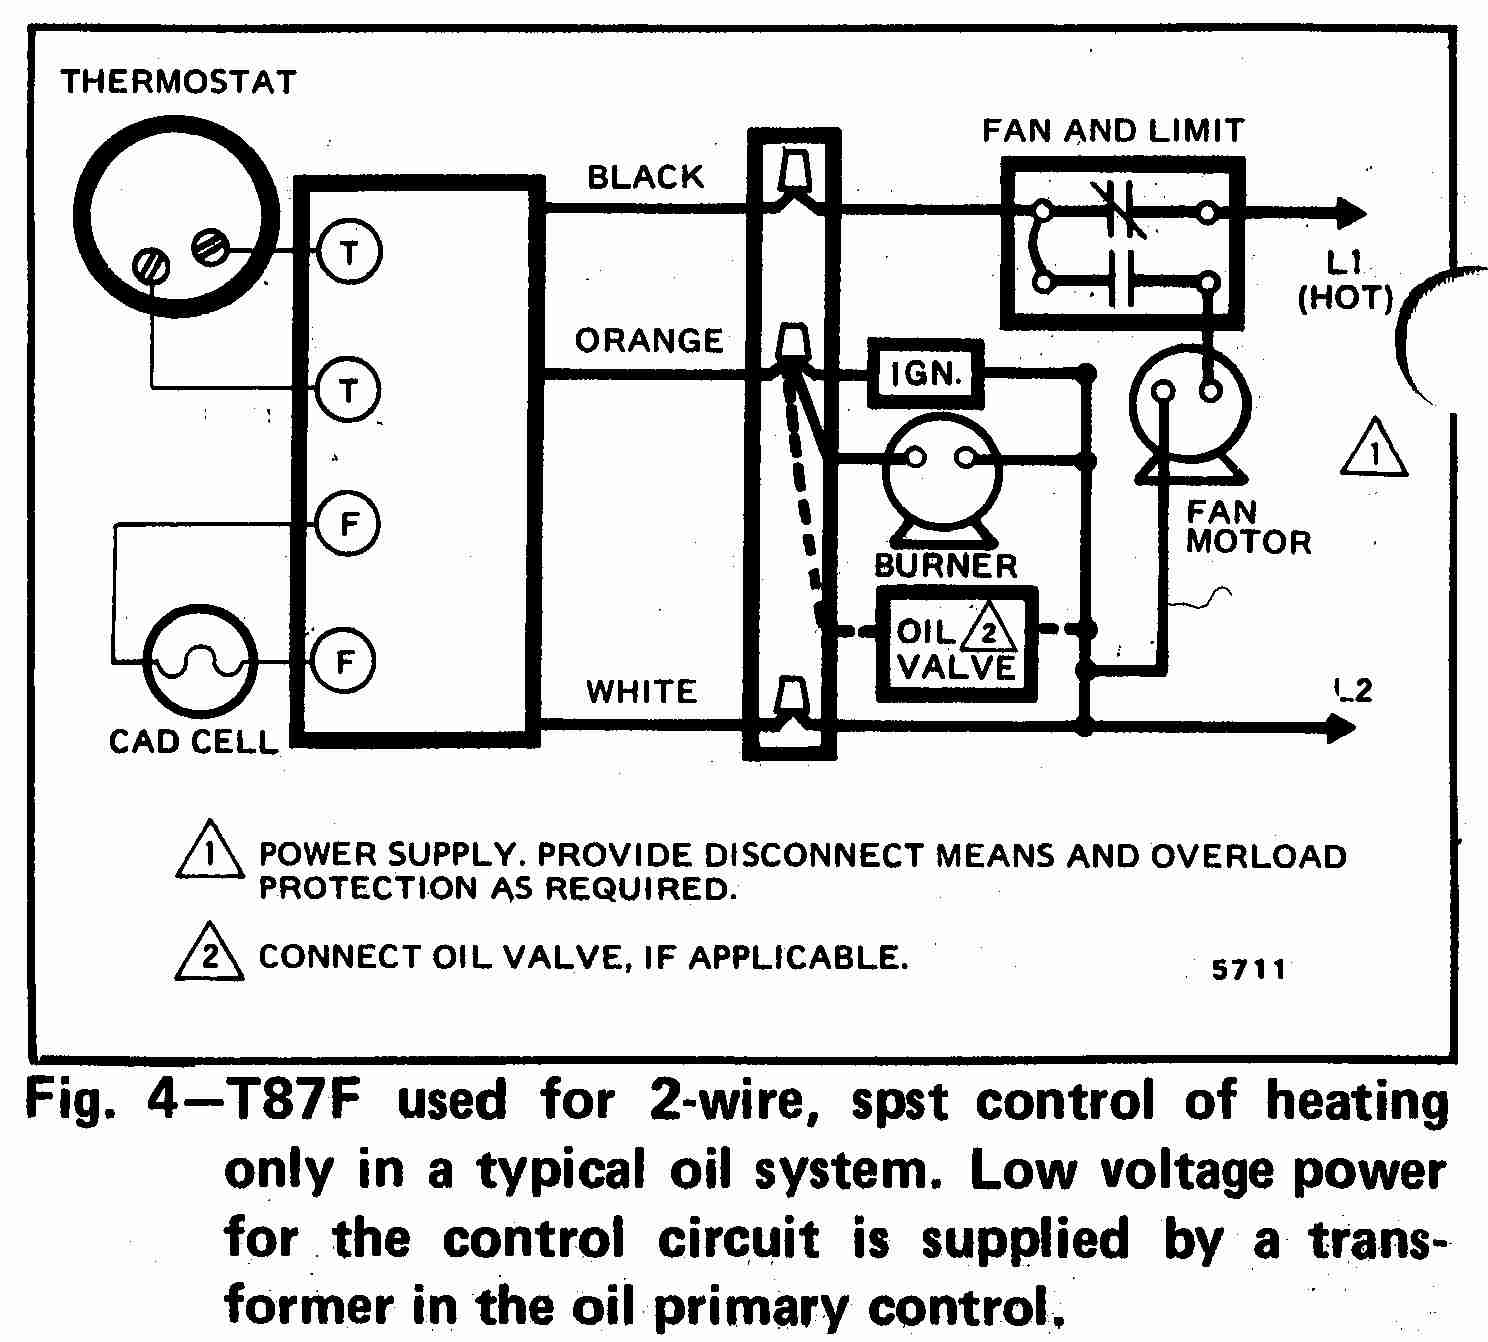 TT_T87F_0002_2W_DJF honeywell aquastat wiring diagram honeywell thermostat wiring heat only boiler wiring diagram at bayanpartner.co